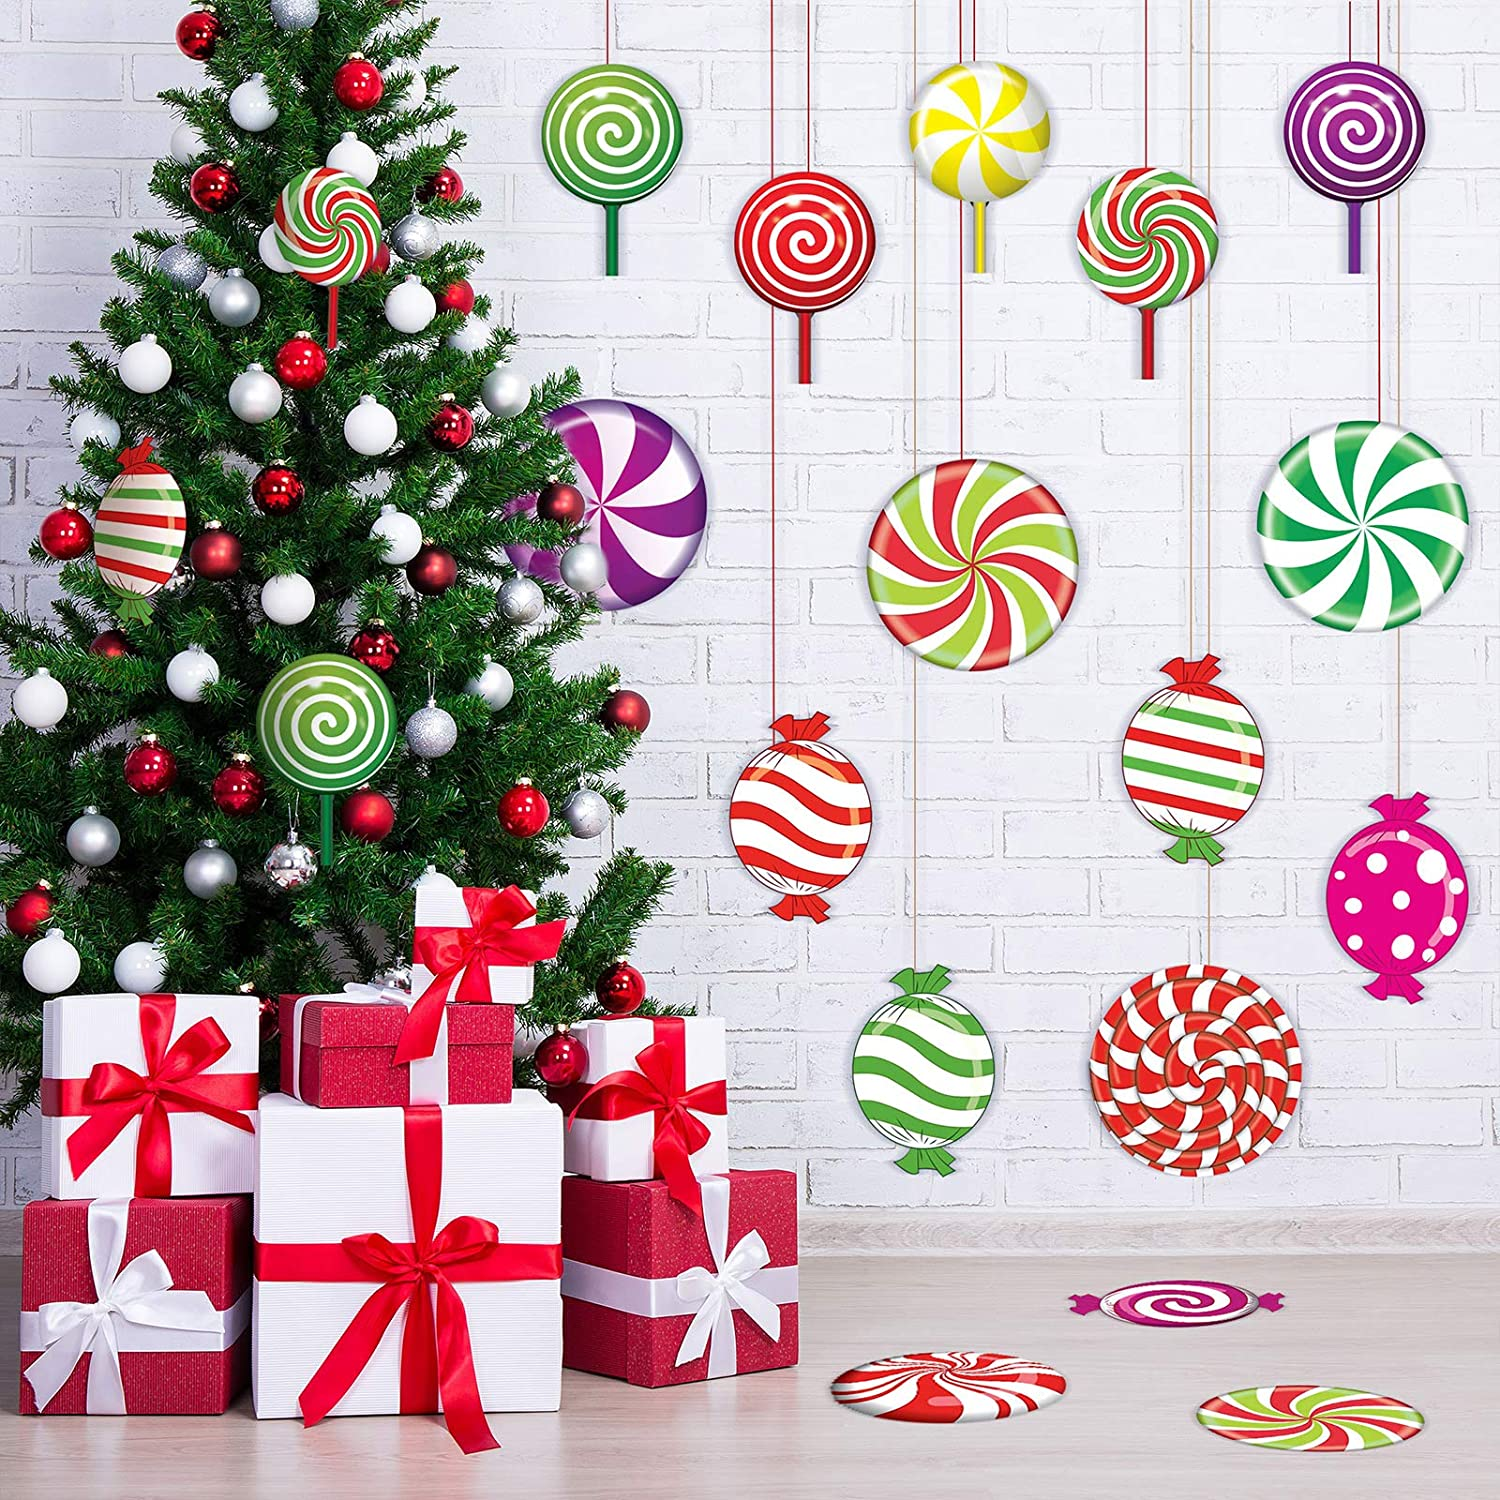 30 Pieces Peppermint Cutouts Colorful Candies Round Lollipop Cutouts for Christmas Decoration Candy Party Wall Cutouts with Stickers Xmas Candy Party Decor Classroom Bulletin Board Decoration